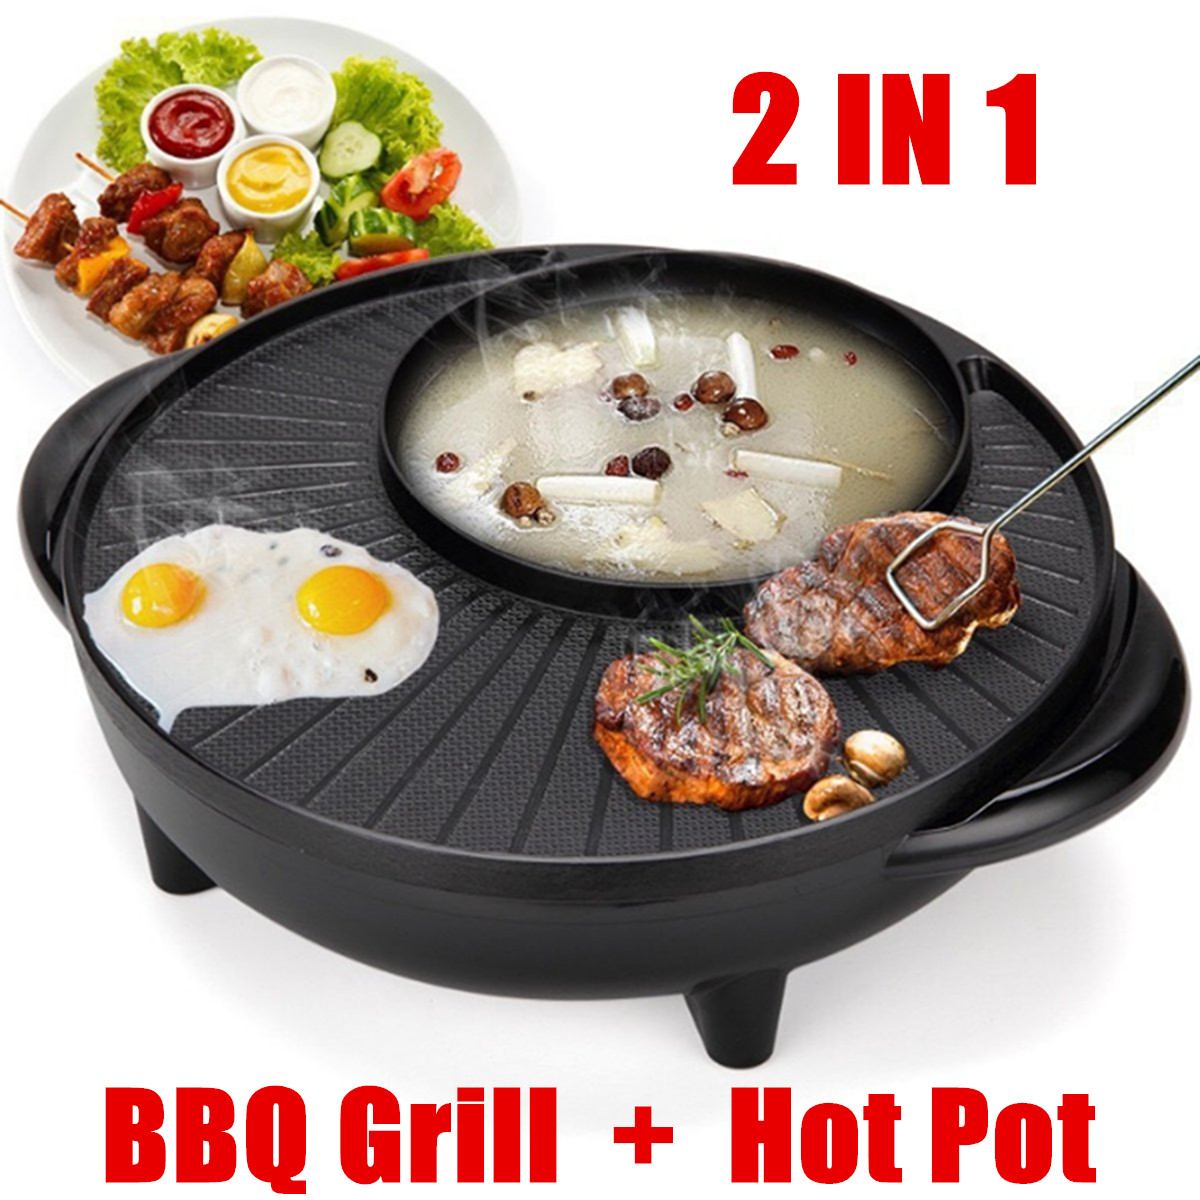 Multifunctional Electric BBQ Grill Non Stick Plate Barbecue Pan Hot Pot Dinner Party Picnic Skillet Maker 2-8 People 1350W 220V